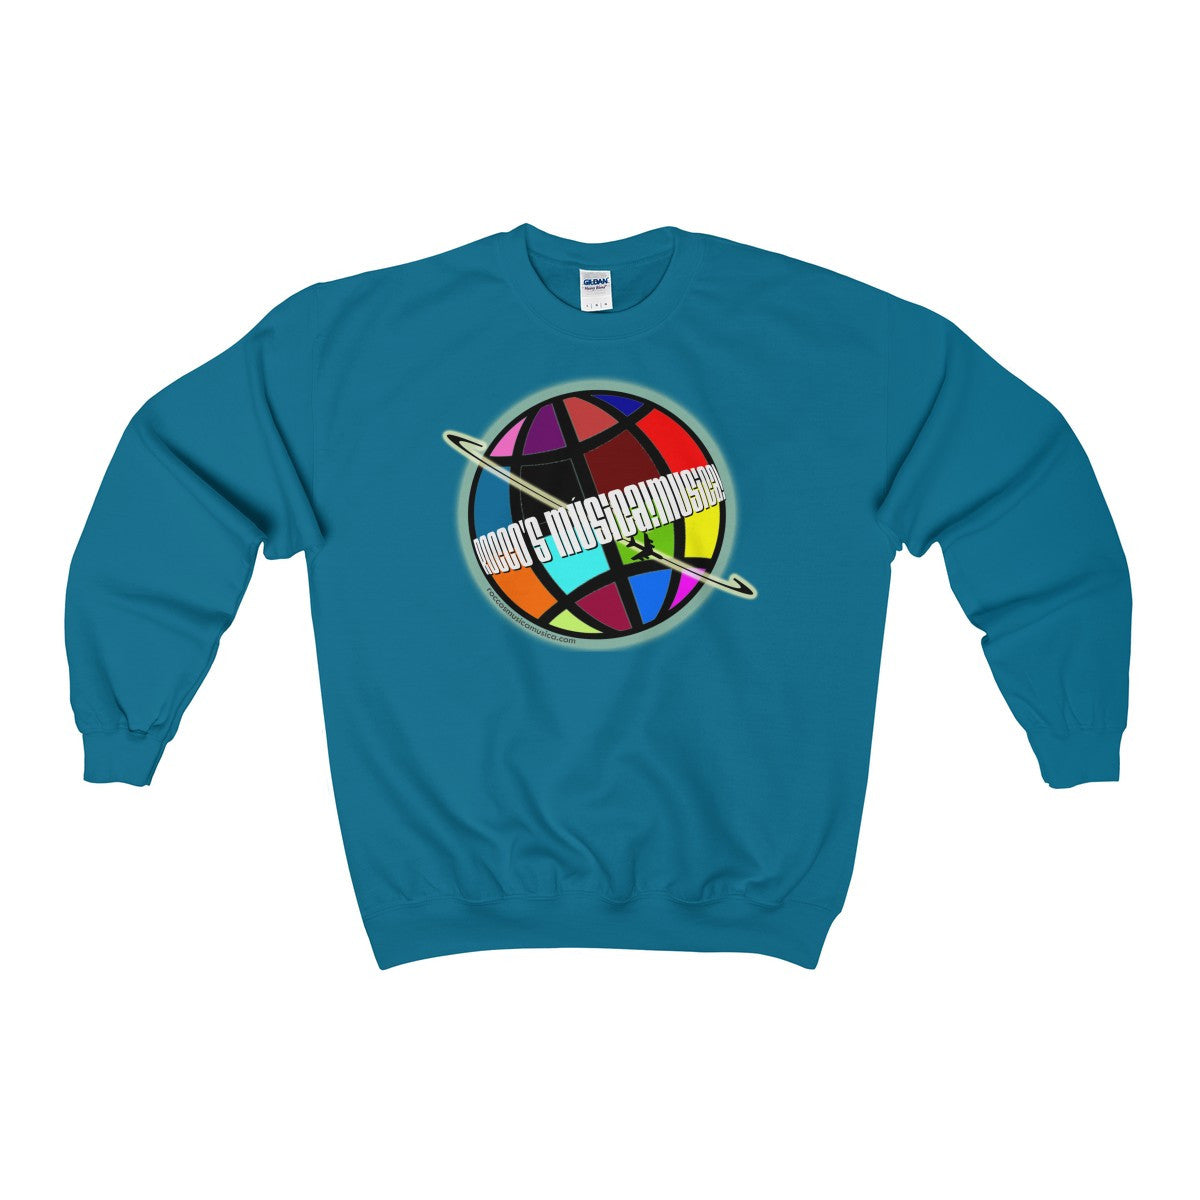 Mondo Rocco Heavy Blend™ Adult Crewneck Sweatshirt